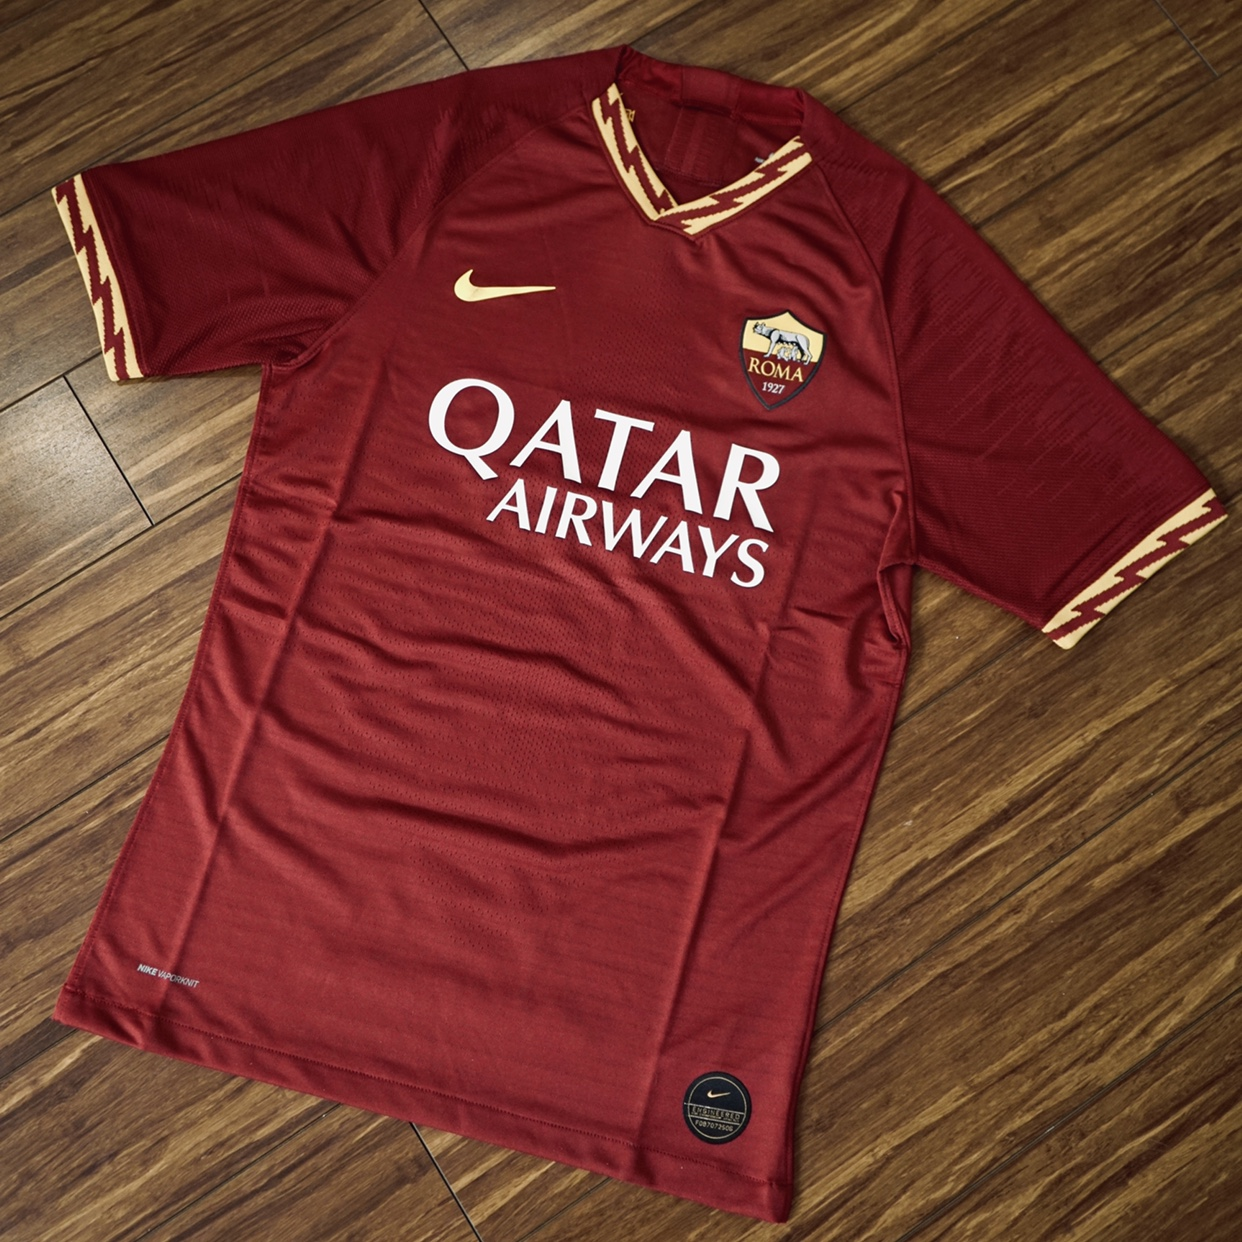 cheap for discount 61a32 87950 Nike AS Roma 2019-2020 Home Jersey player version in ...